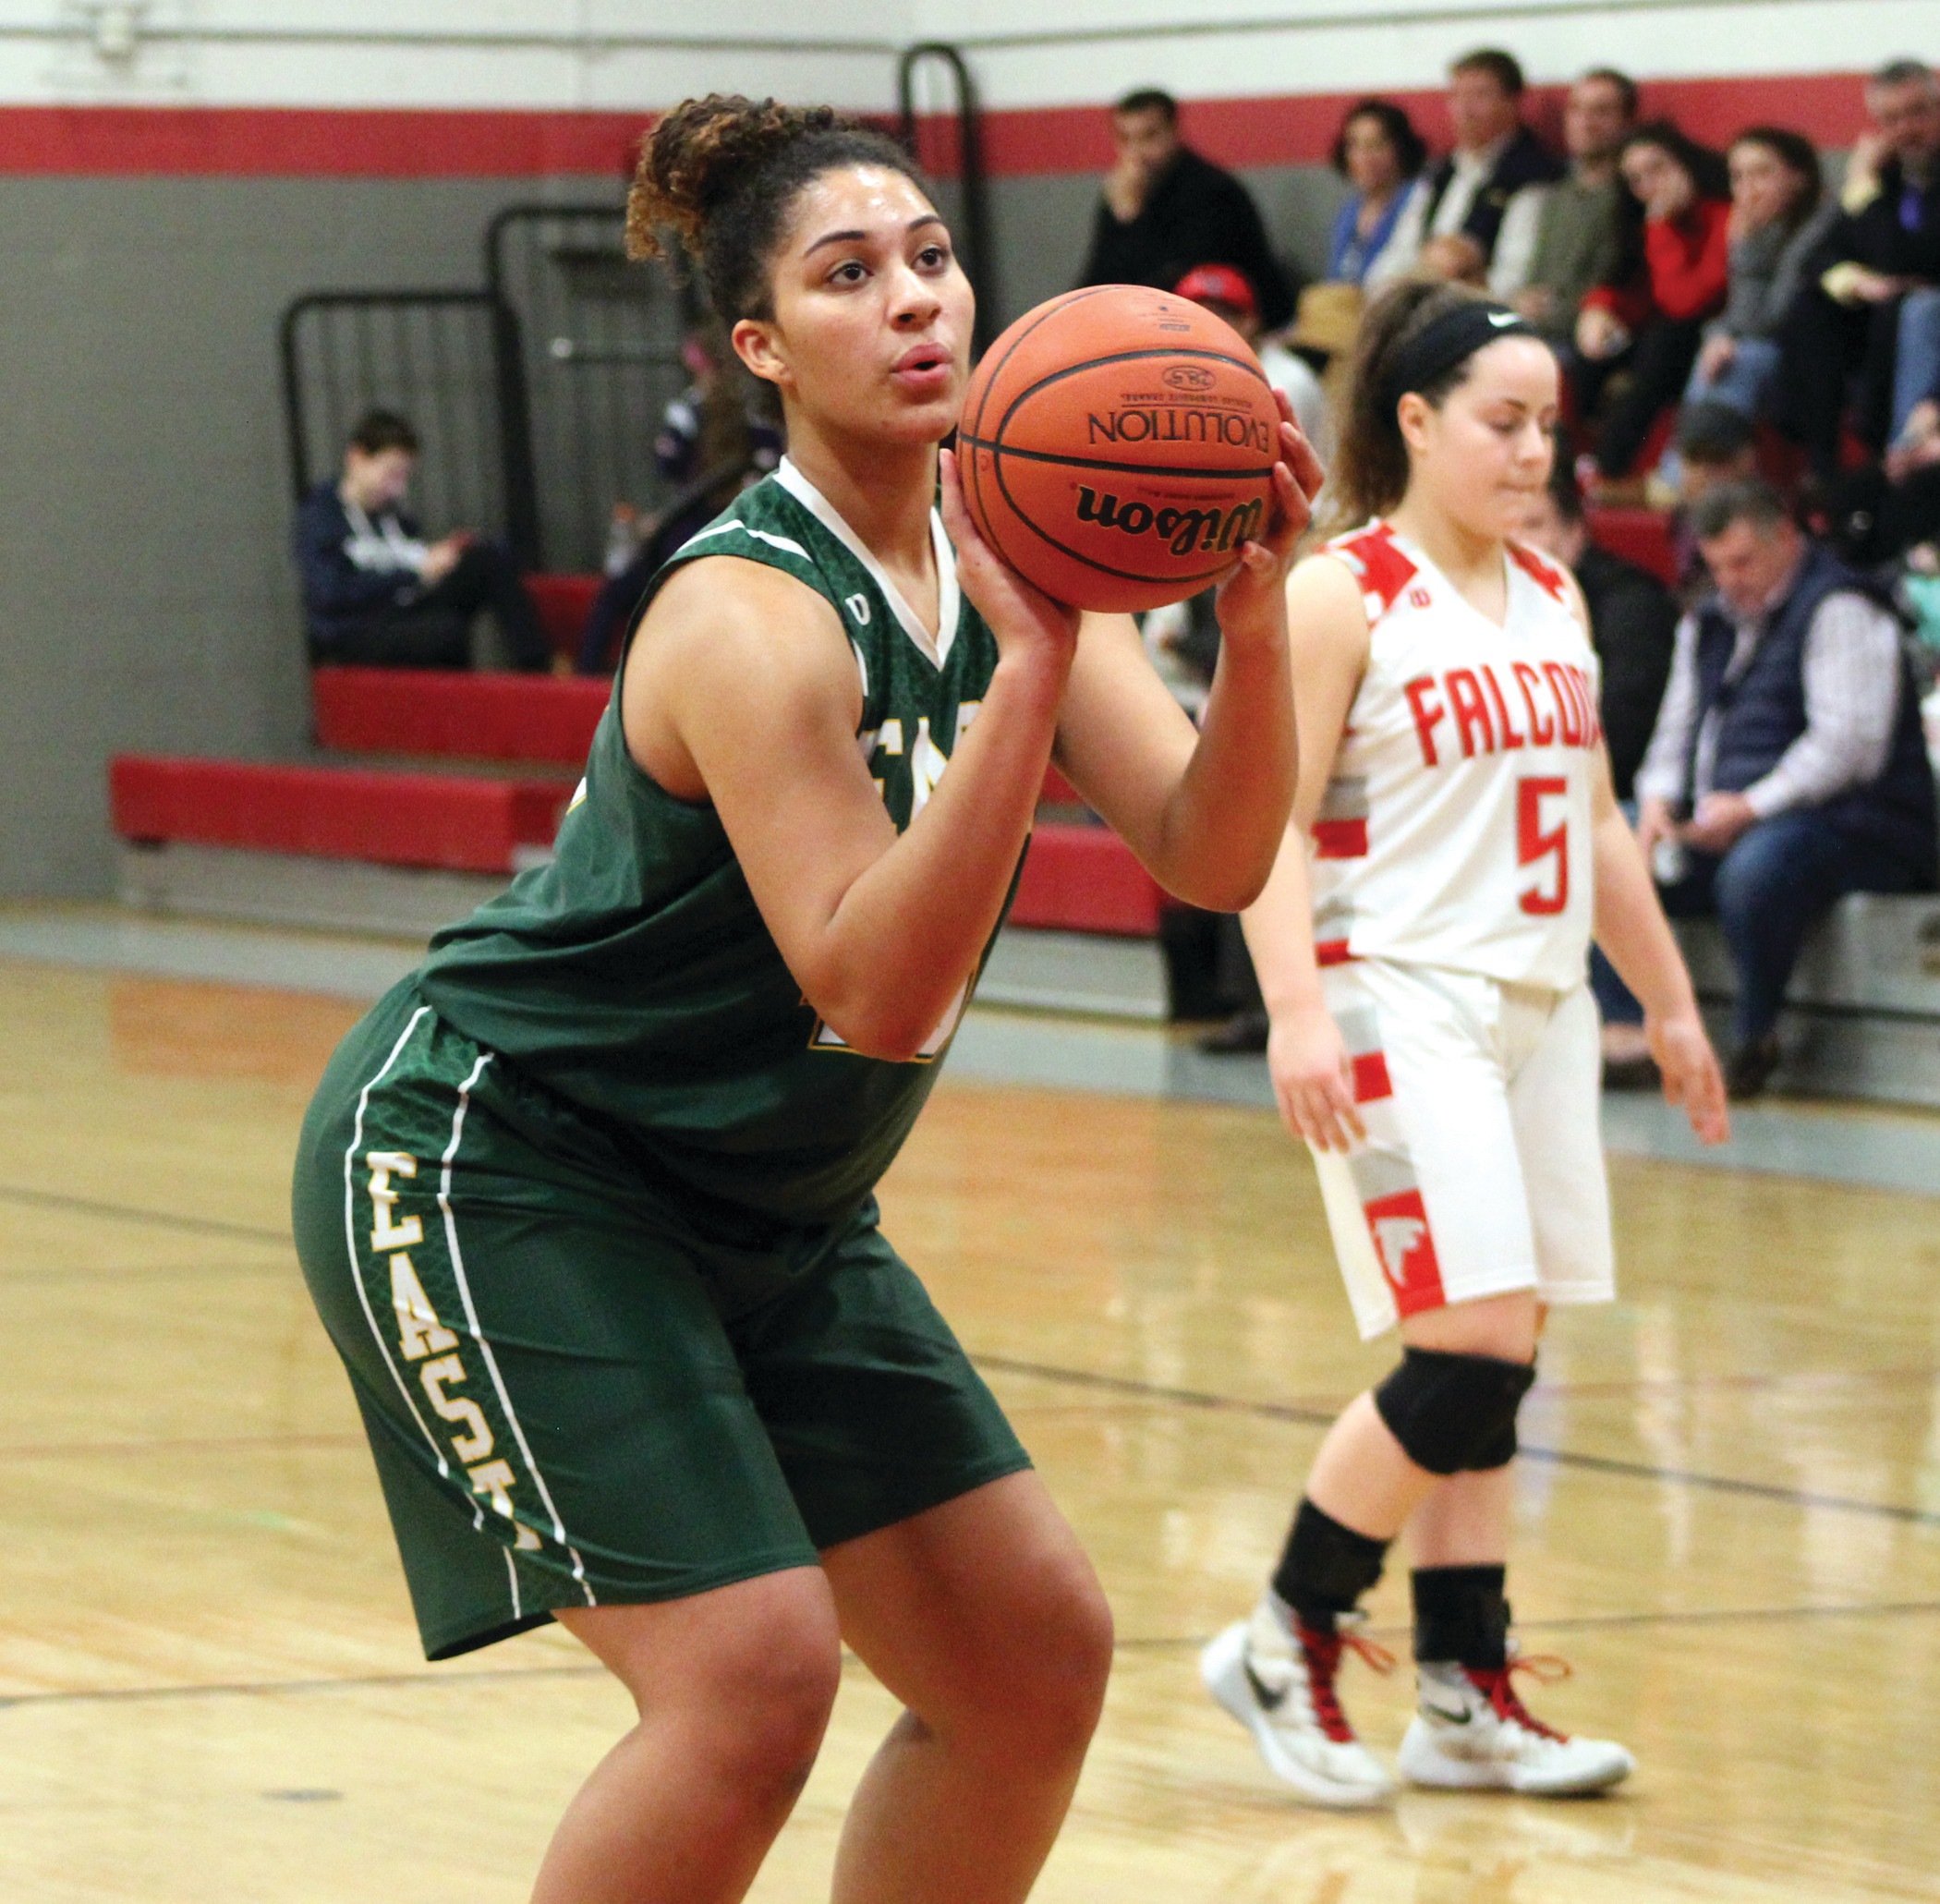 CHARITY STRIPE: East's Maia Caito steps to the line to attempt a free throw during the second half against West on Monday night. Caito led the way for the 'Bolts, posting a double-double with 15 points and 13 rebounds.